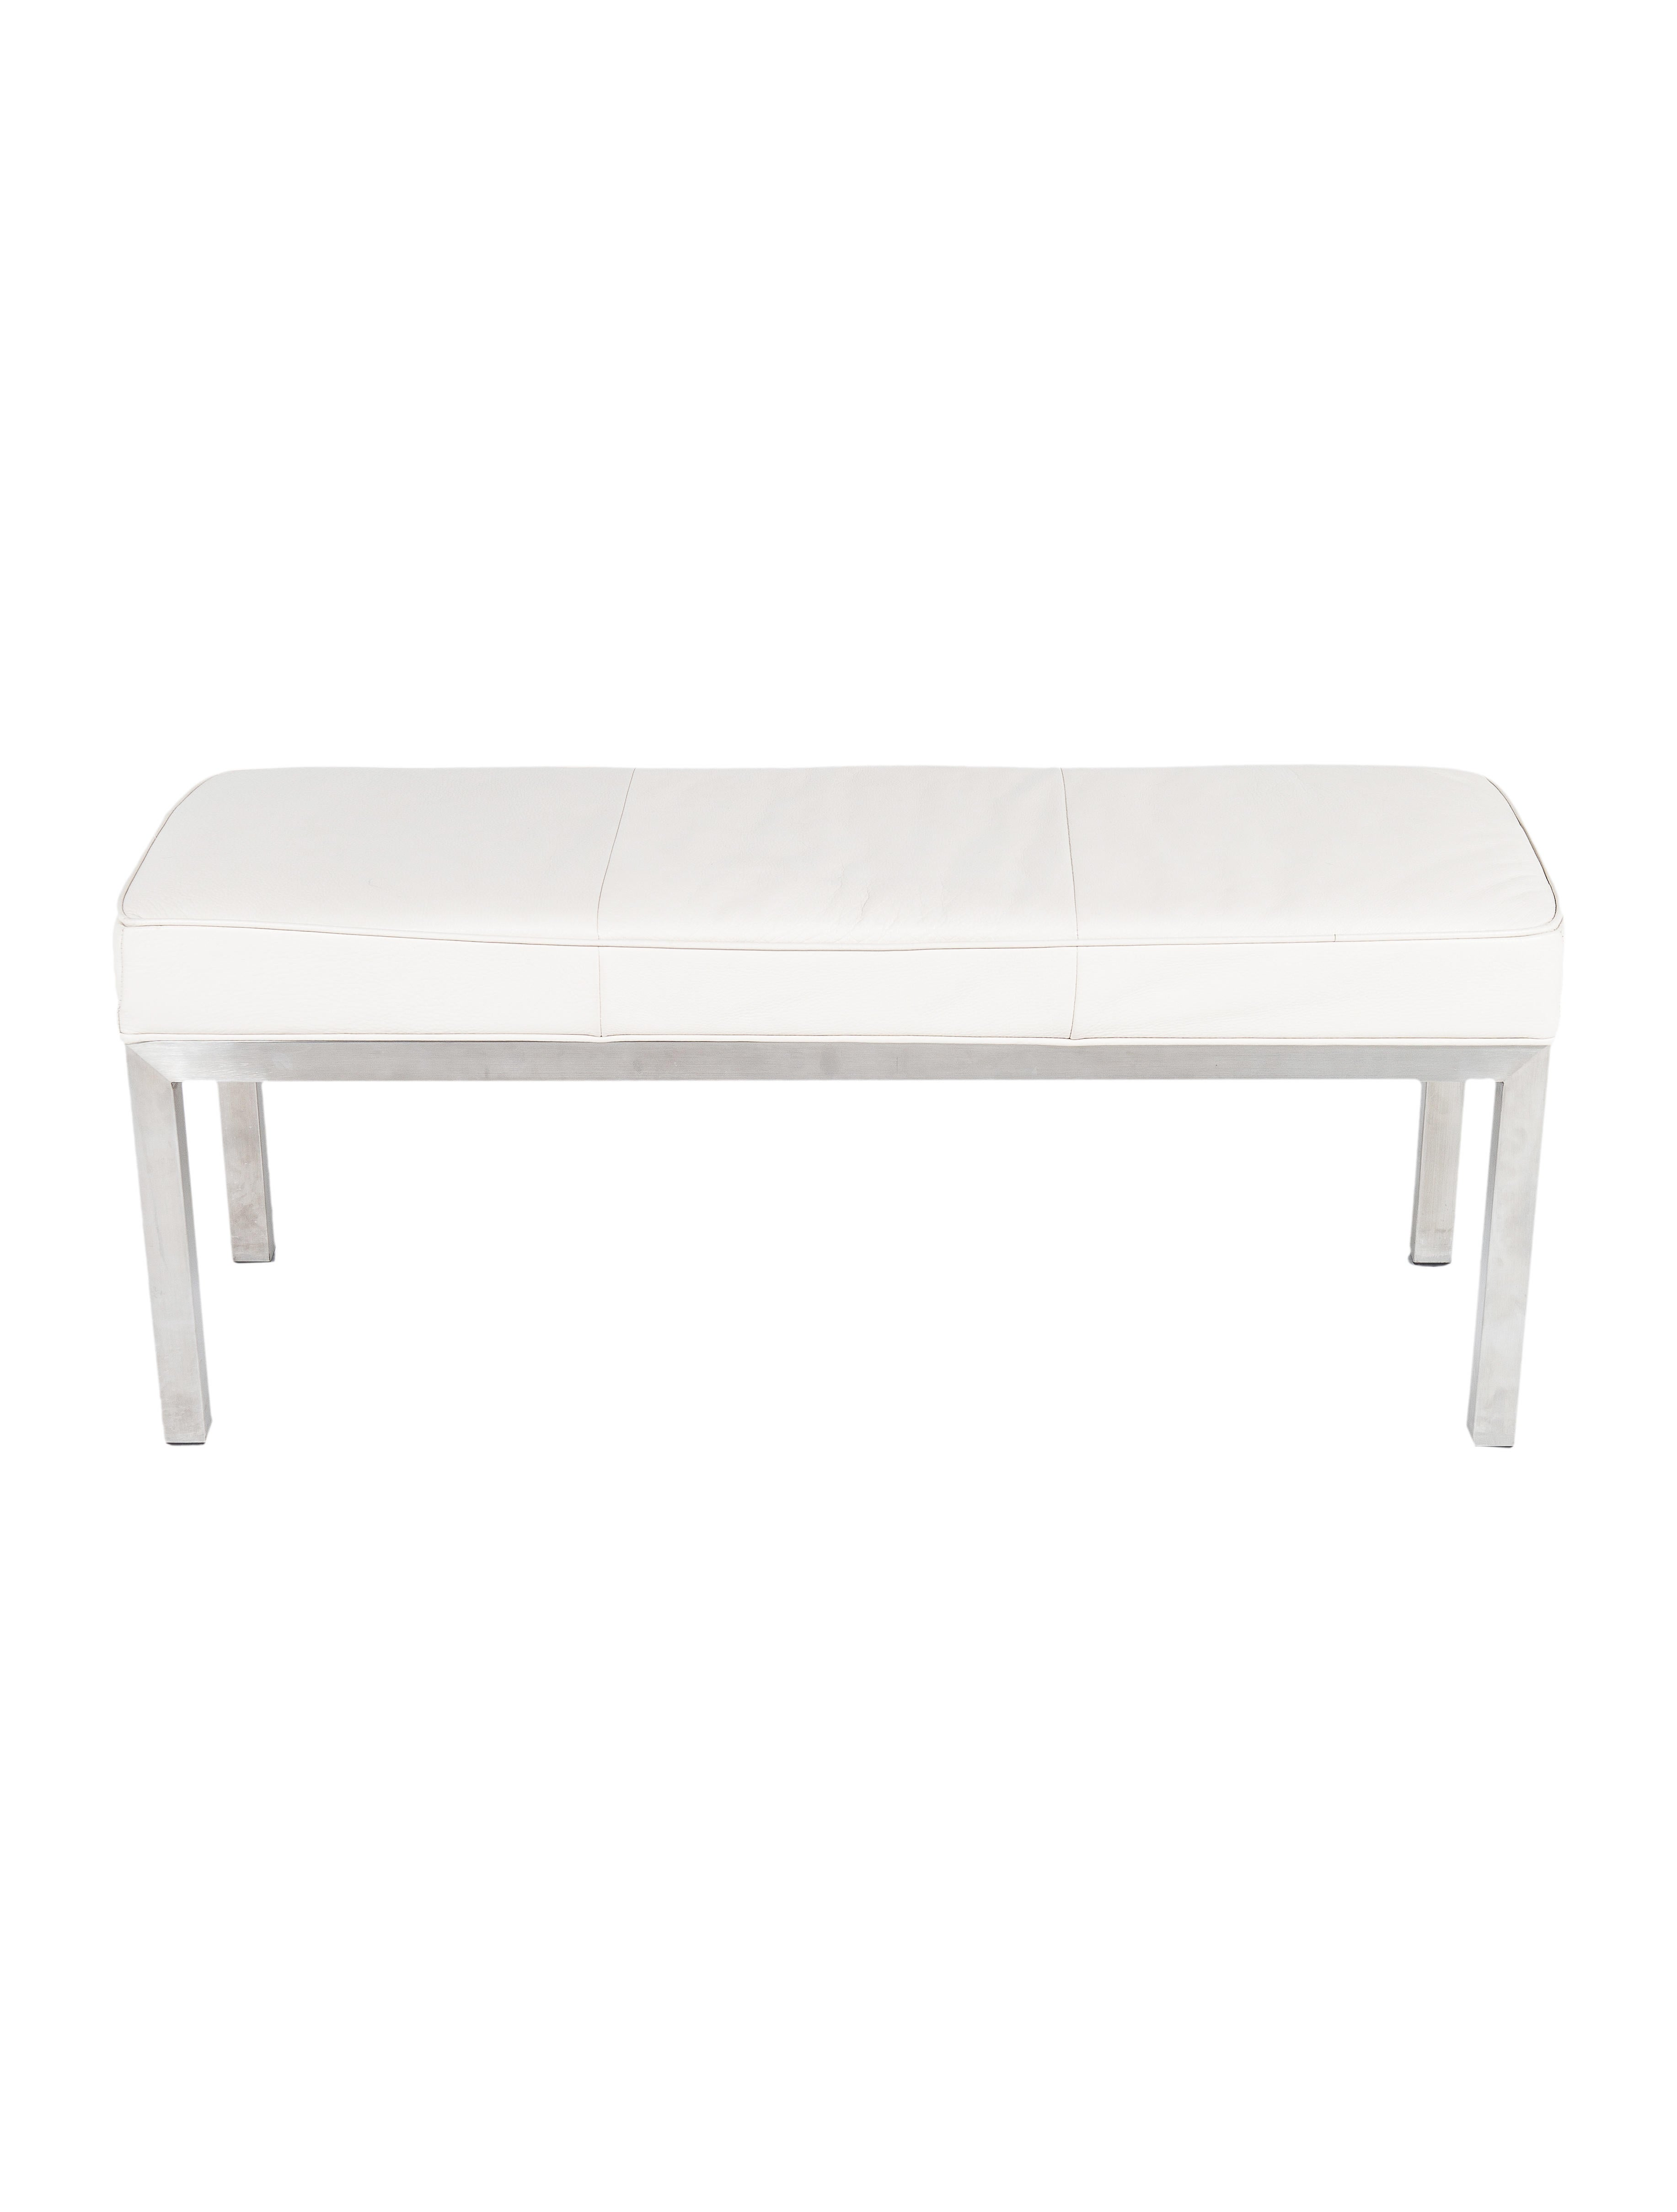 White Leather Bench Furniture Furni20500 The Realreal